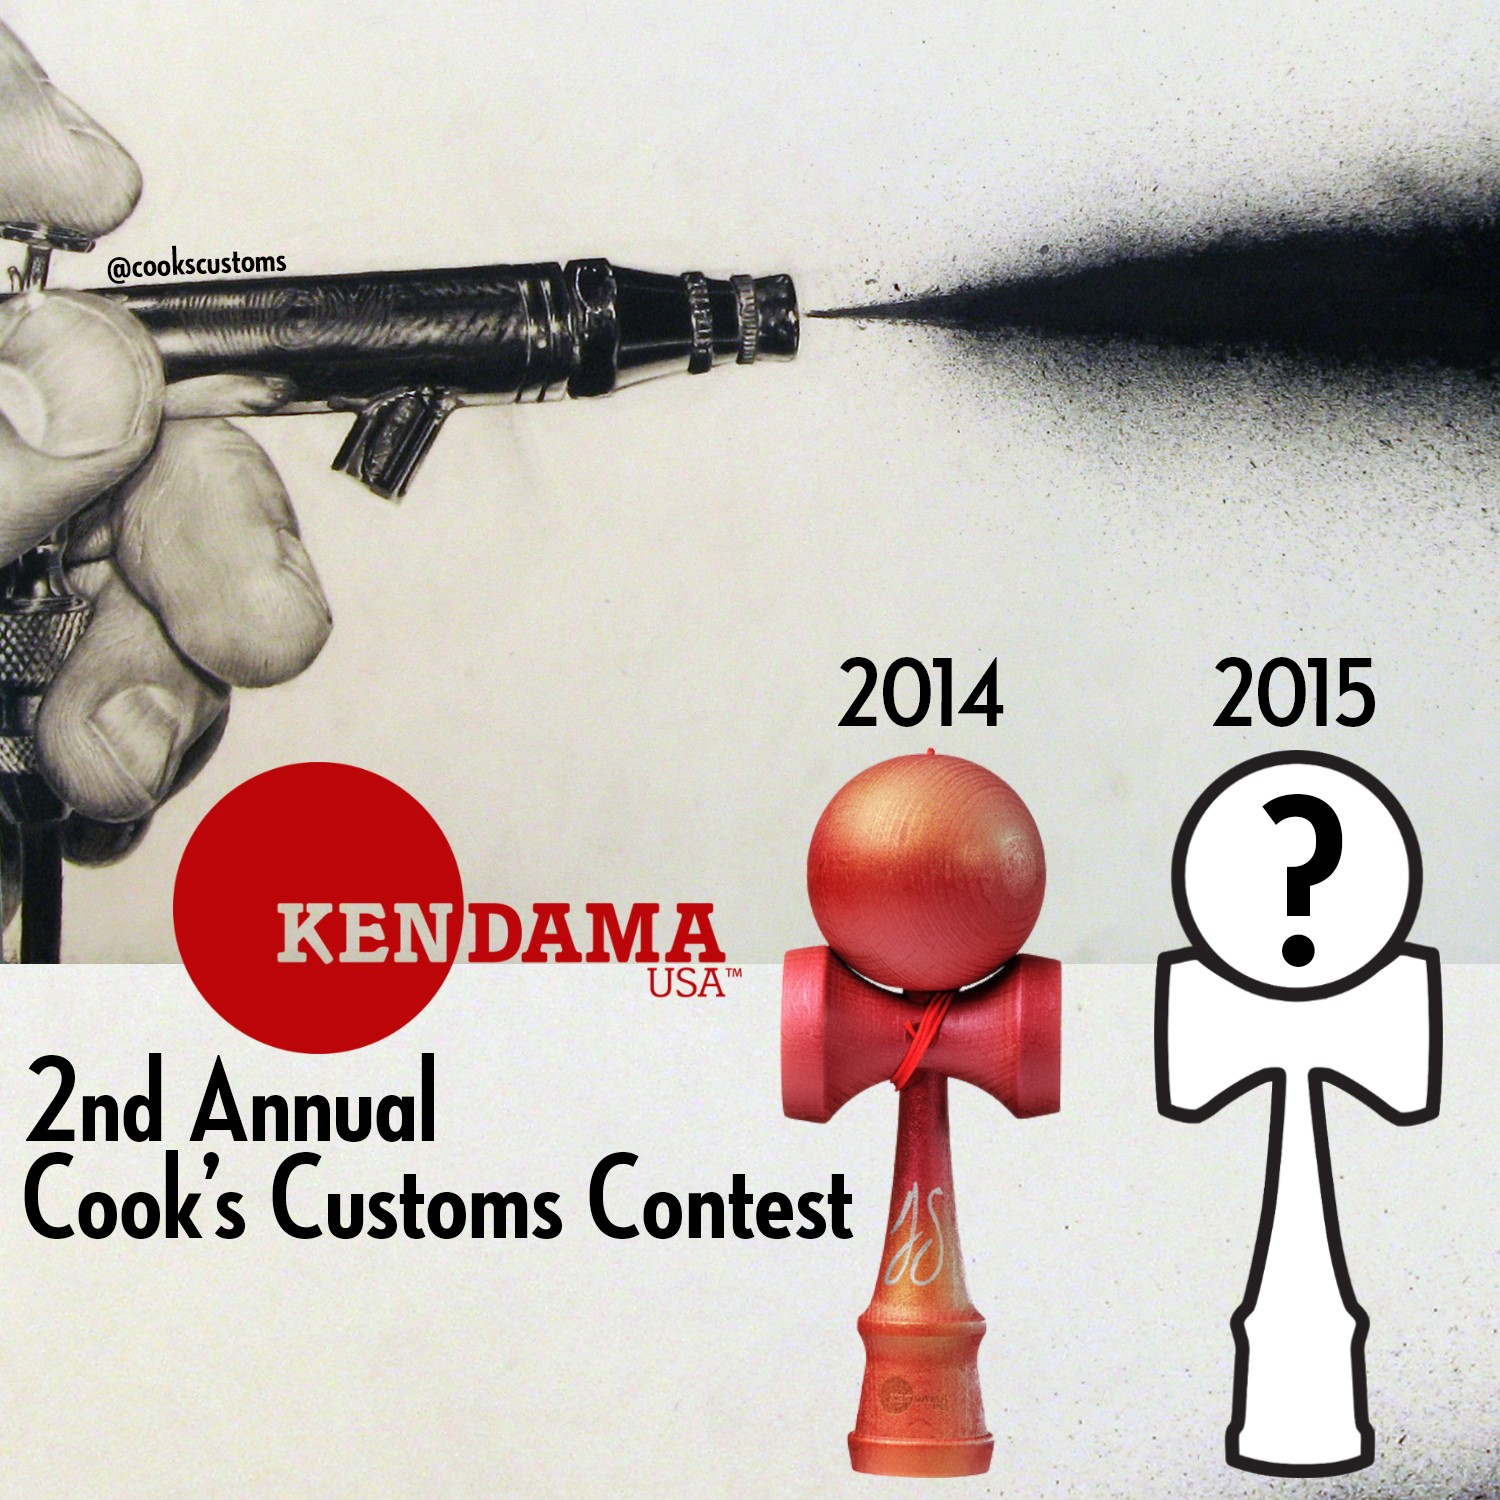 2nd Annual Cook's Customs Contest 2015